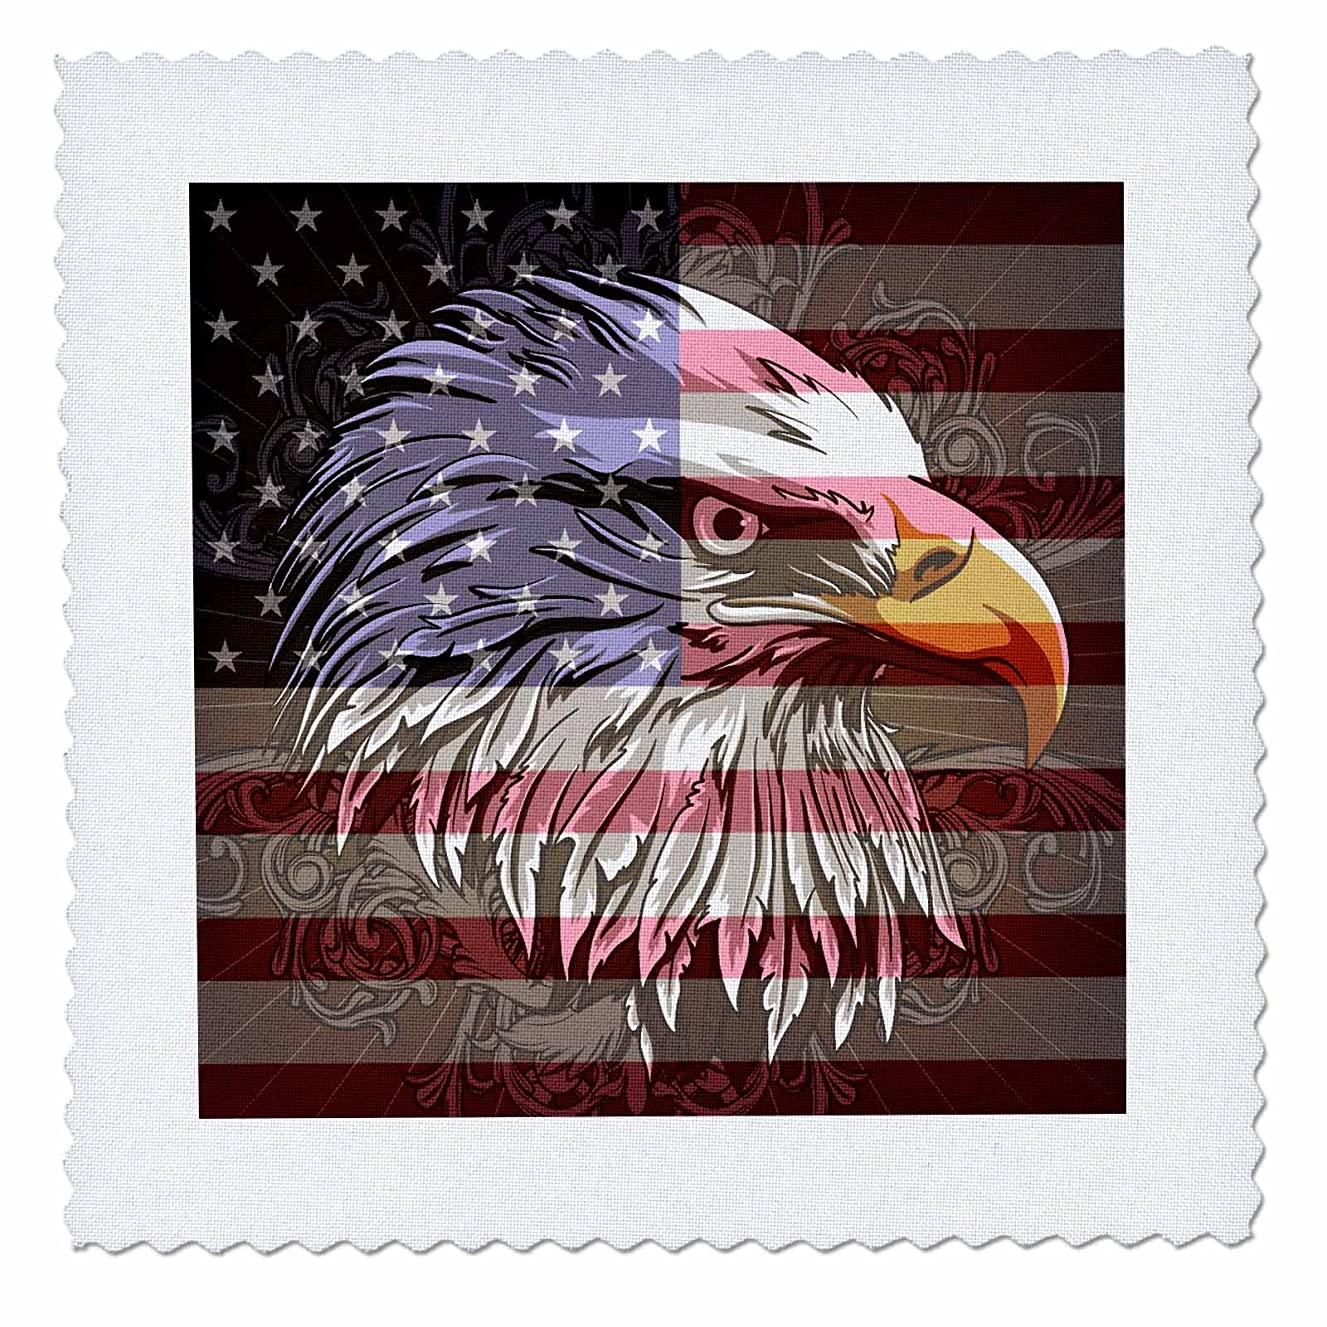 3dRose qs_116181_1 Ornate Patriotic Bald Eagle and US American Flag Pride Great for Fourth of July in Dependence Day Quilt Square, 10 by 10-Inch